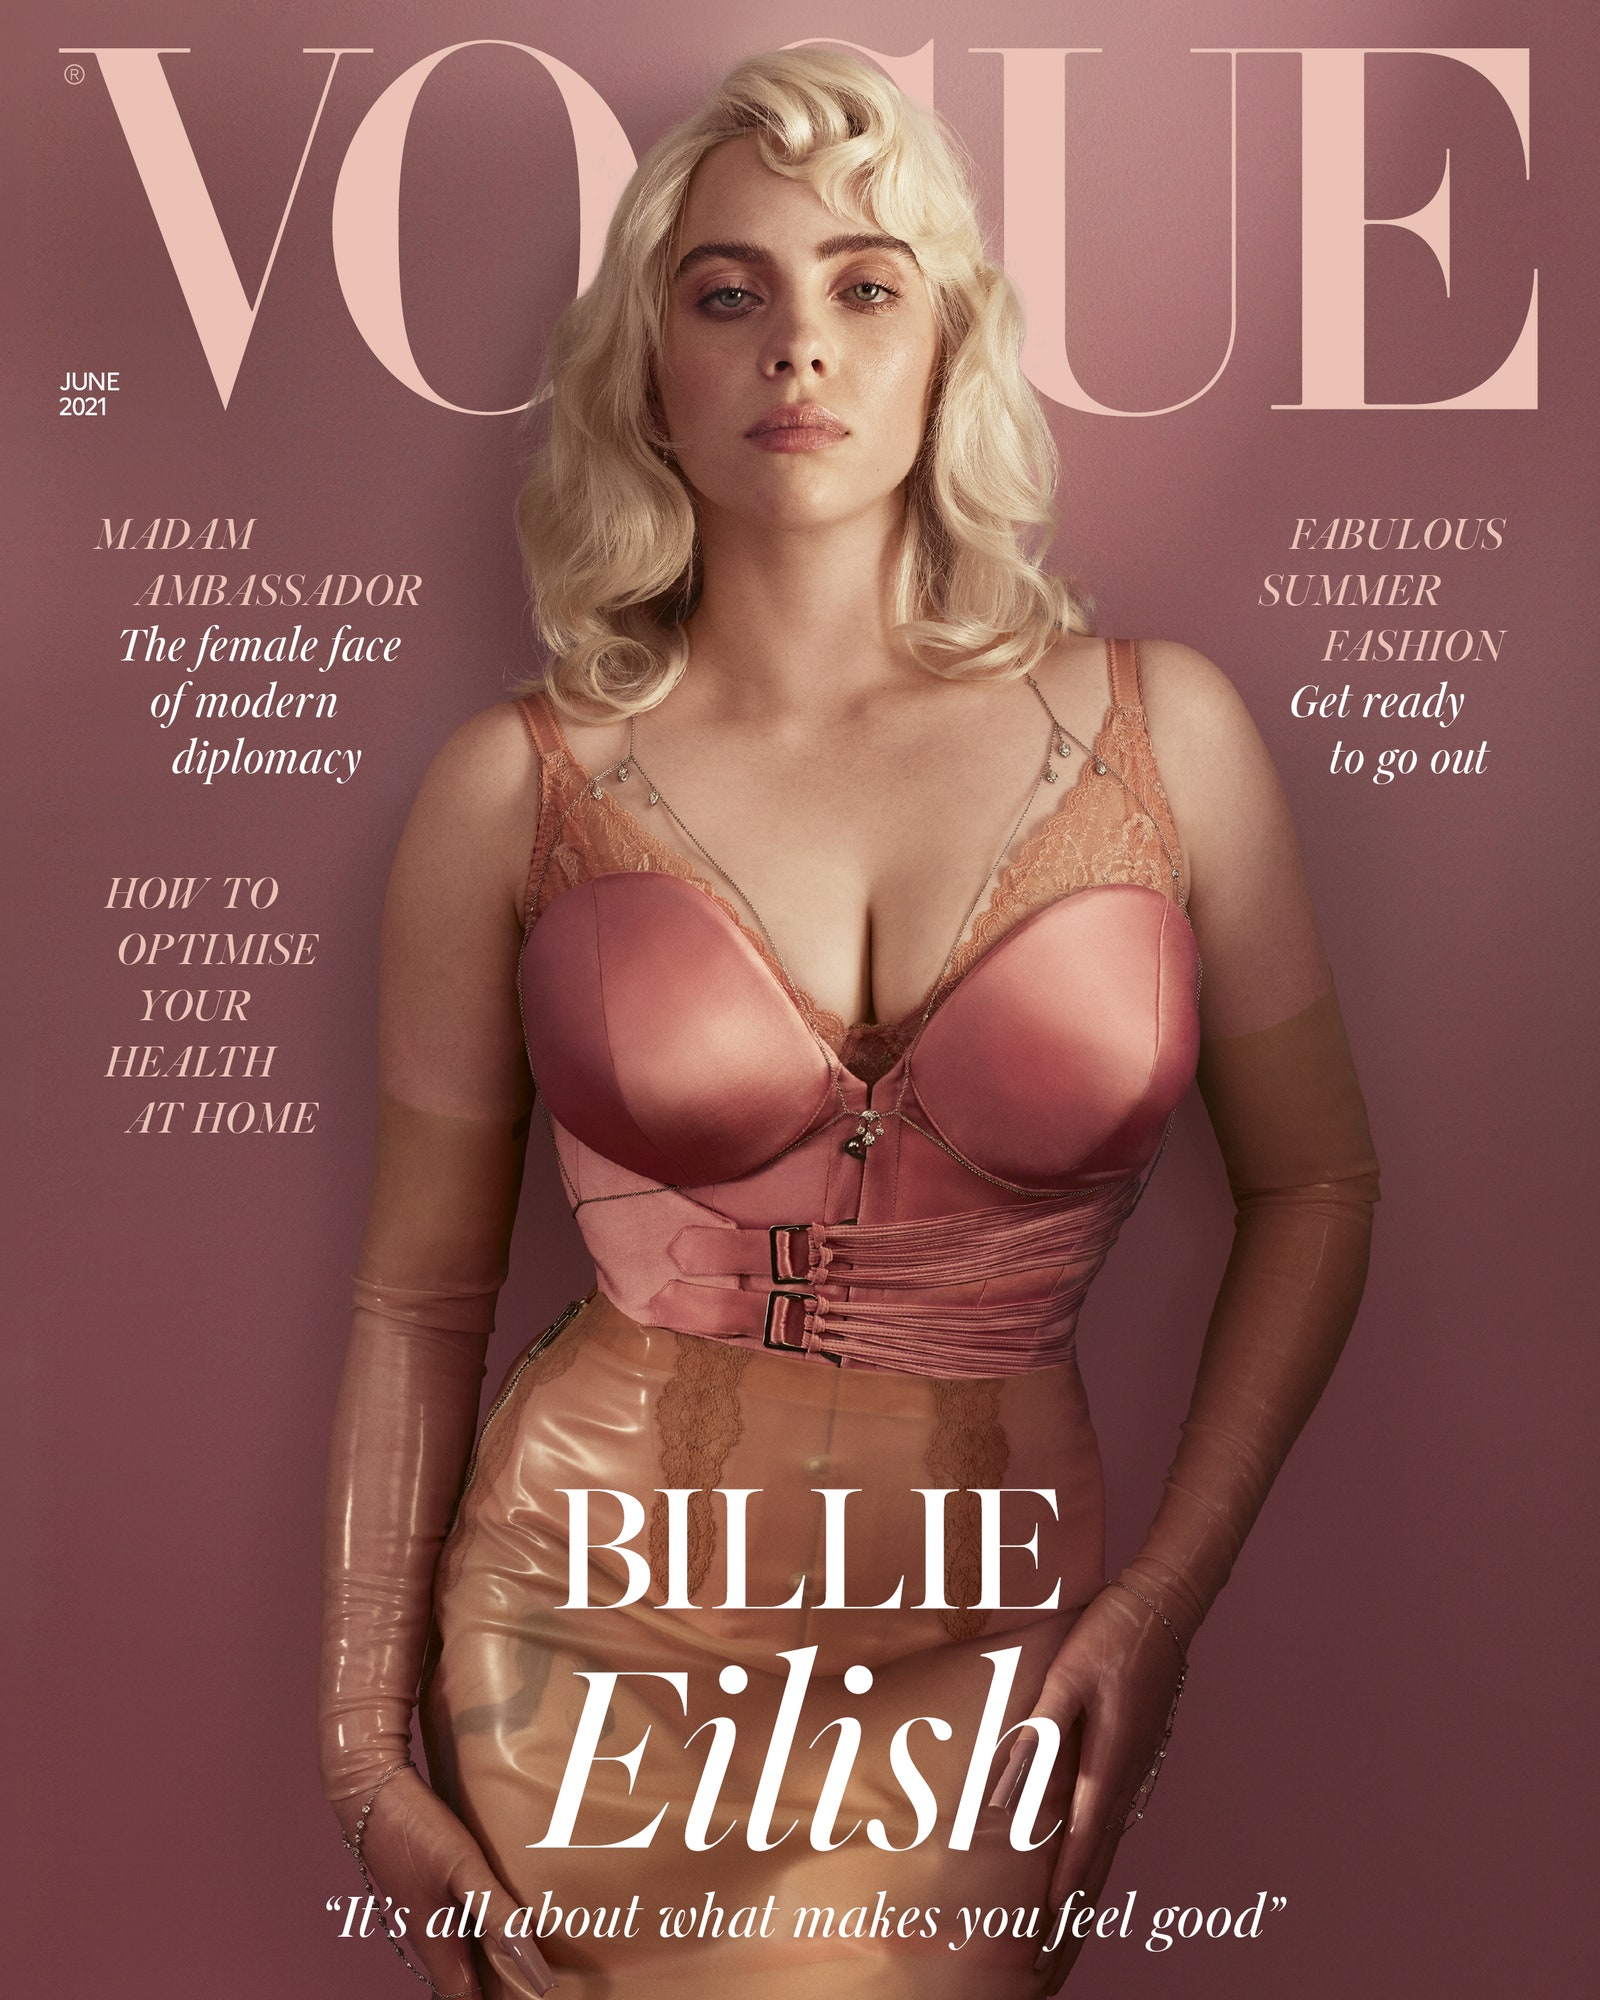 https://www.billieforum.com/media/vogue_june_2021_cover-jpg.4679/full